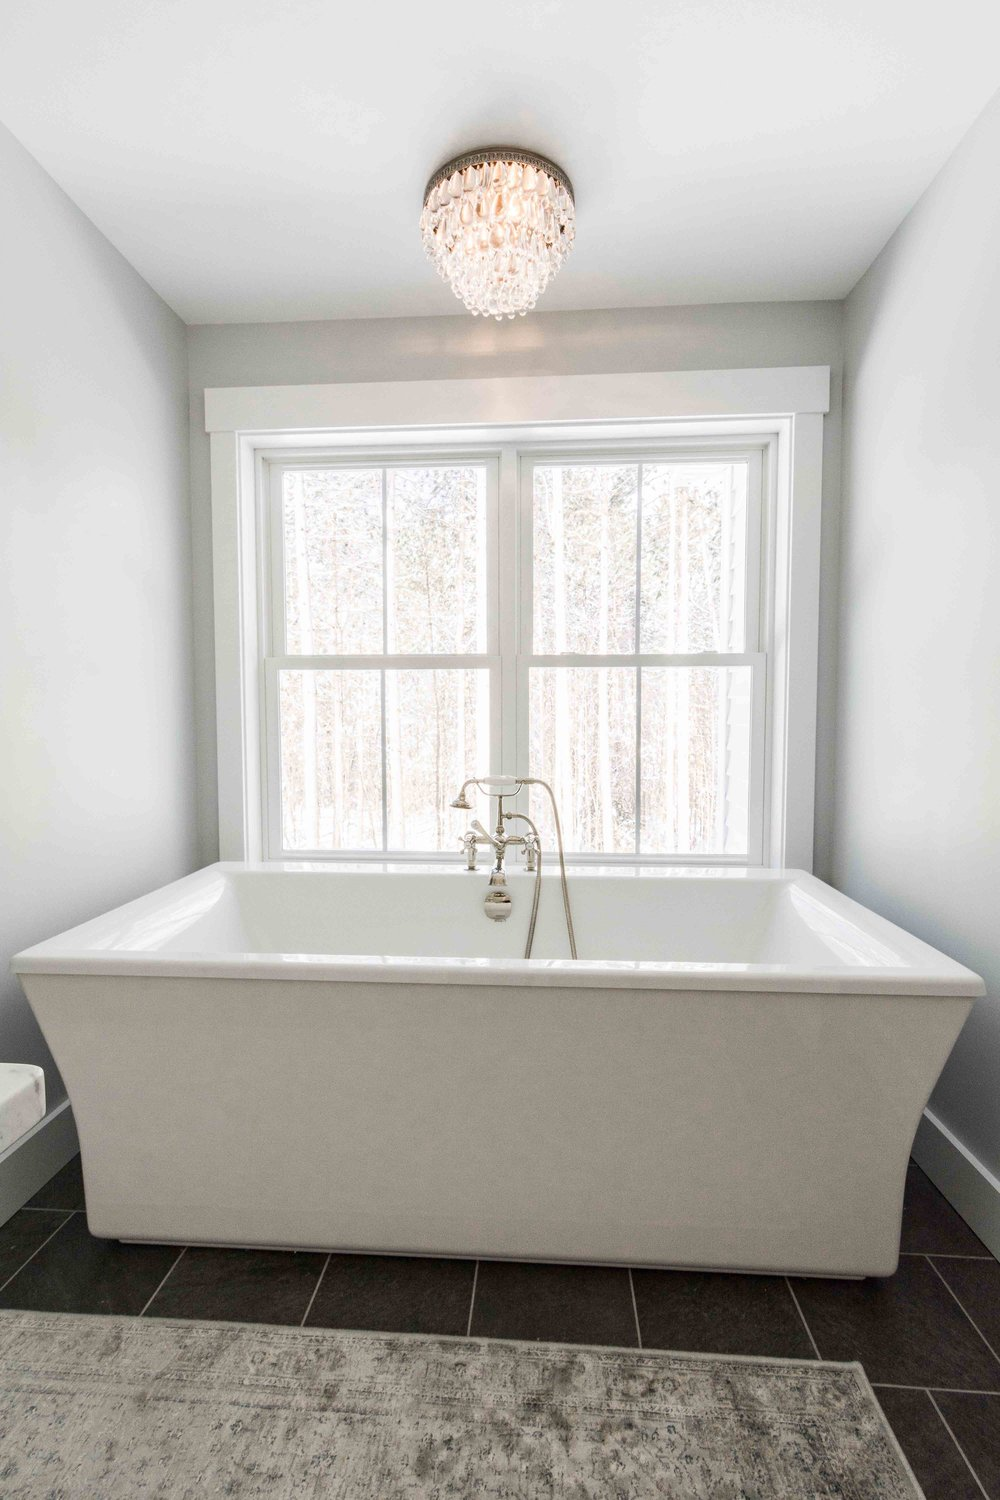 Pleasant River Farmhouse, Windham, Maine, Master Bathroom Tub